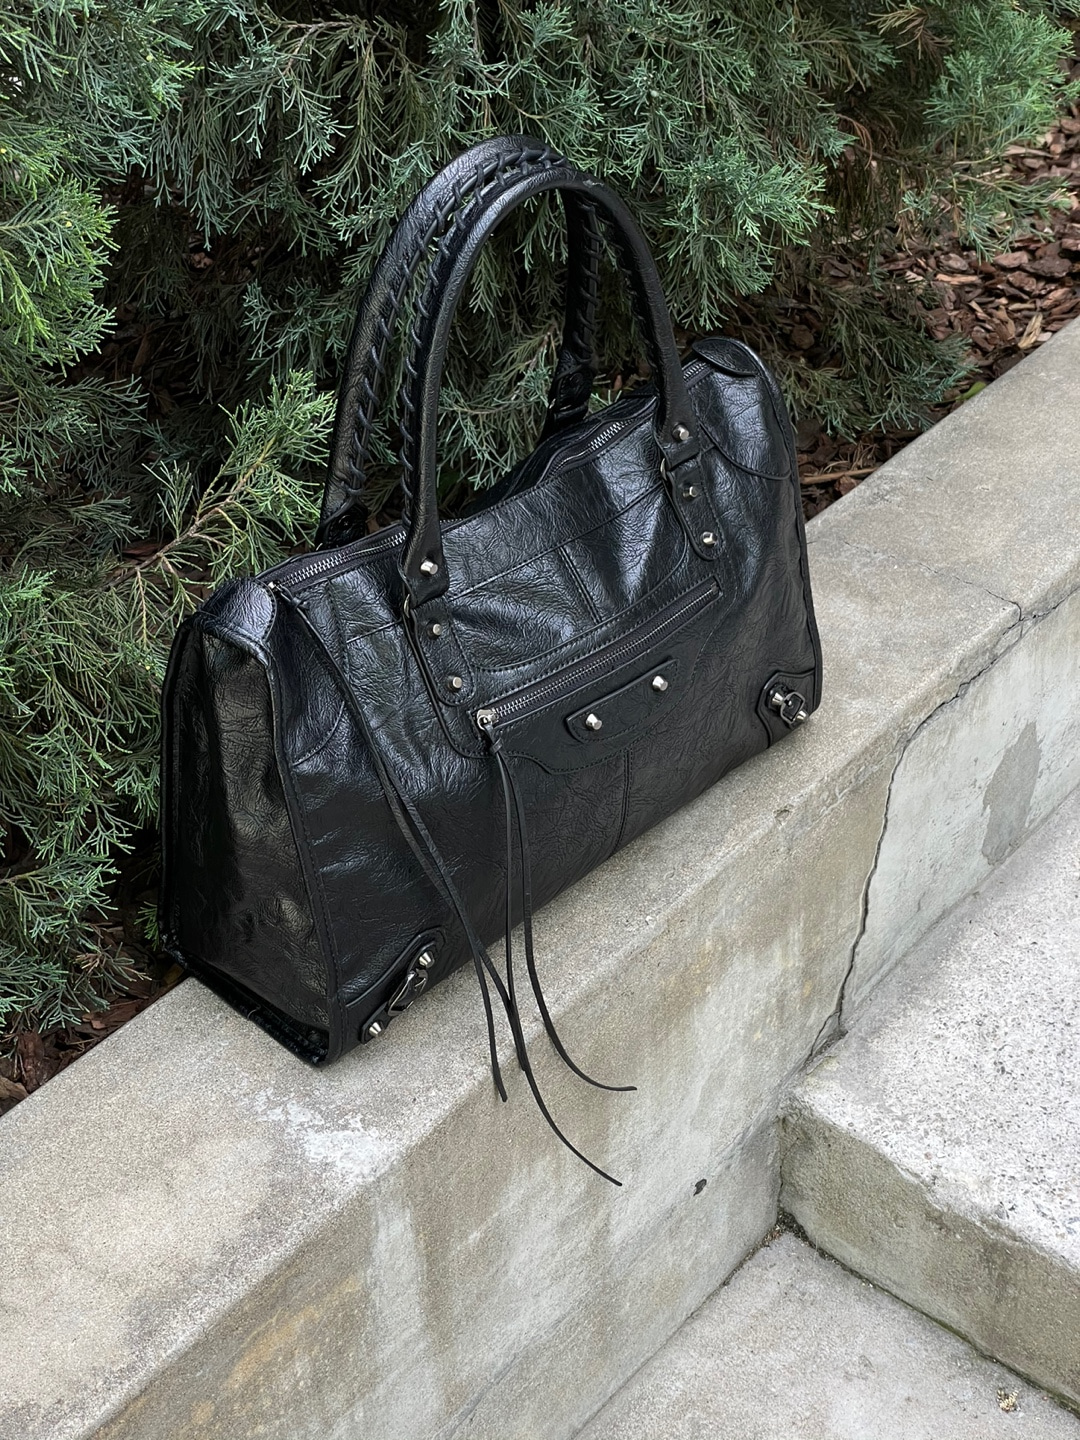 Chrome bag